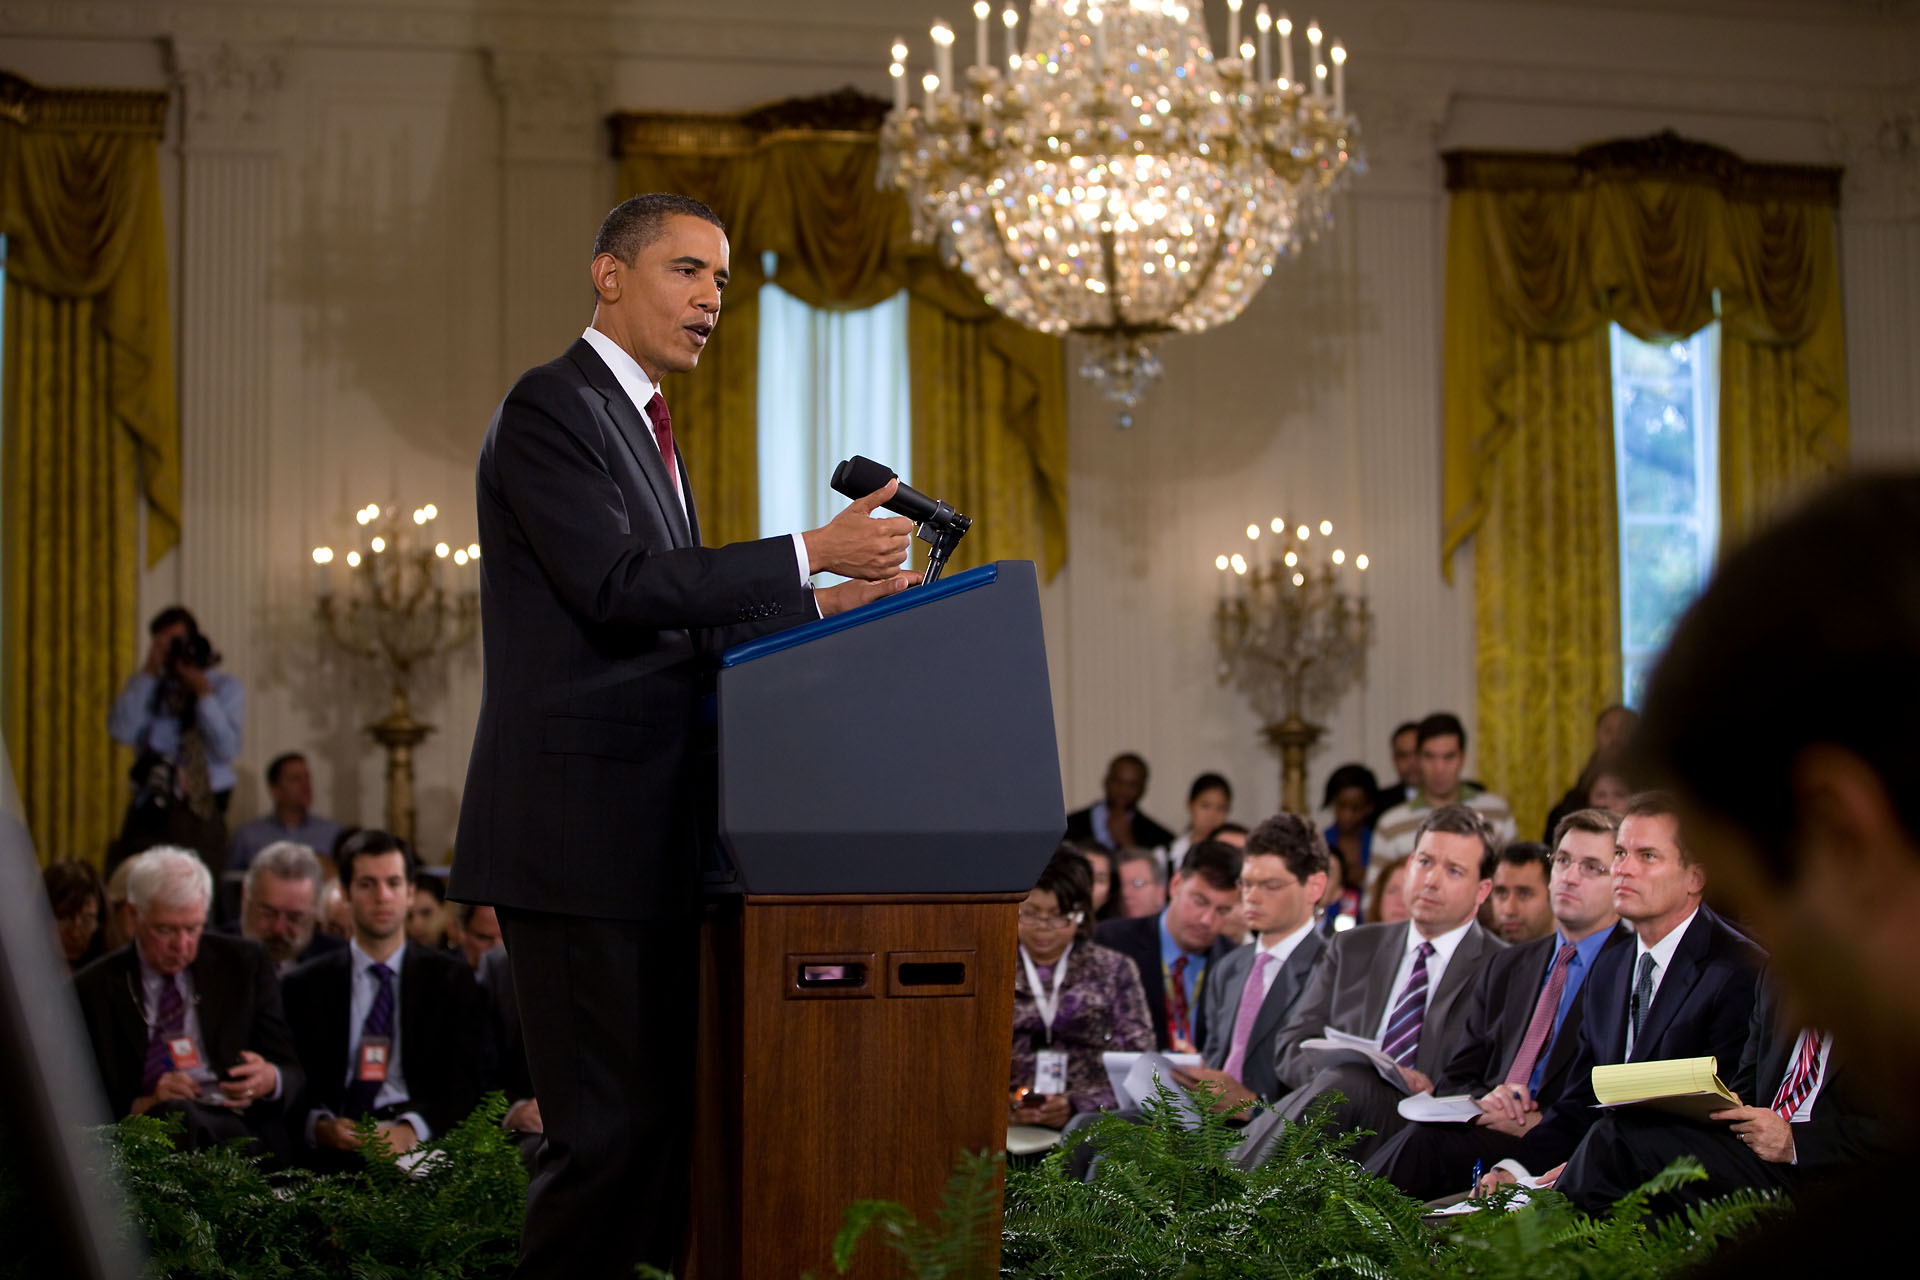 President Barack Obama Holds a News Conference After the 2010 Elections